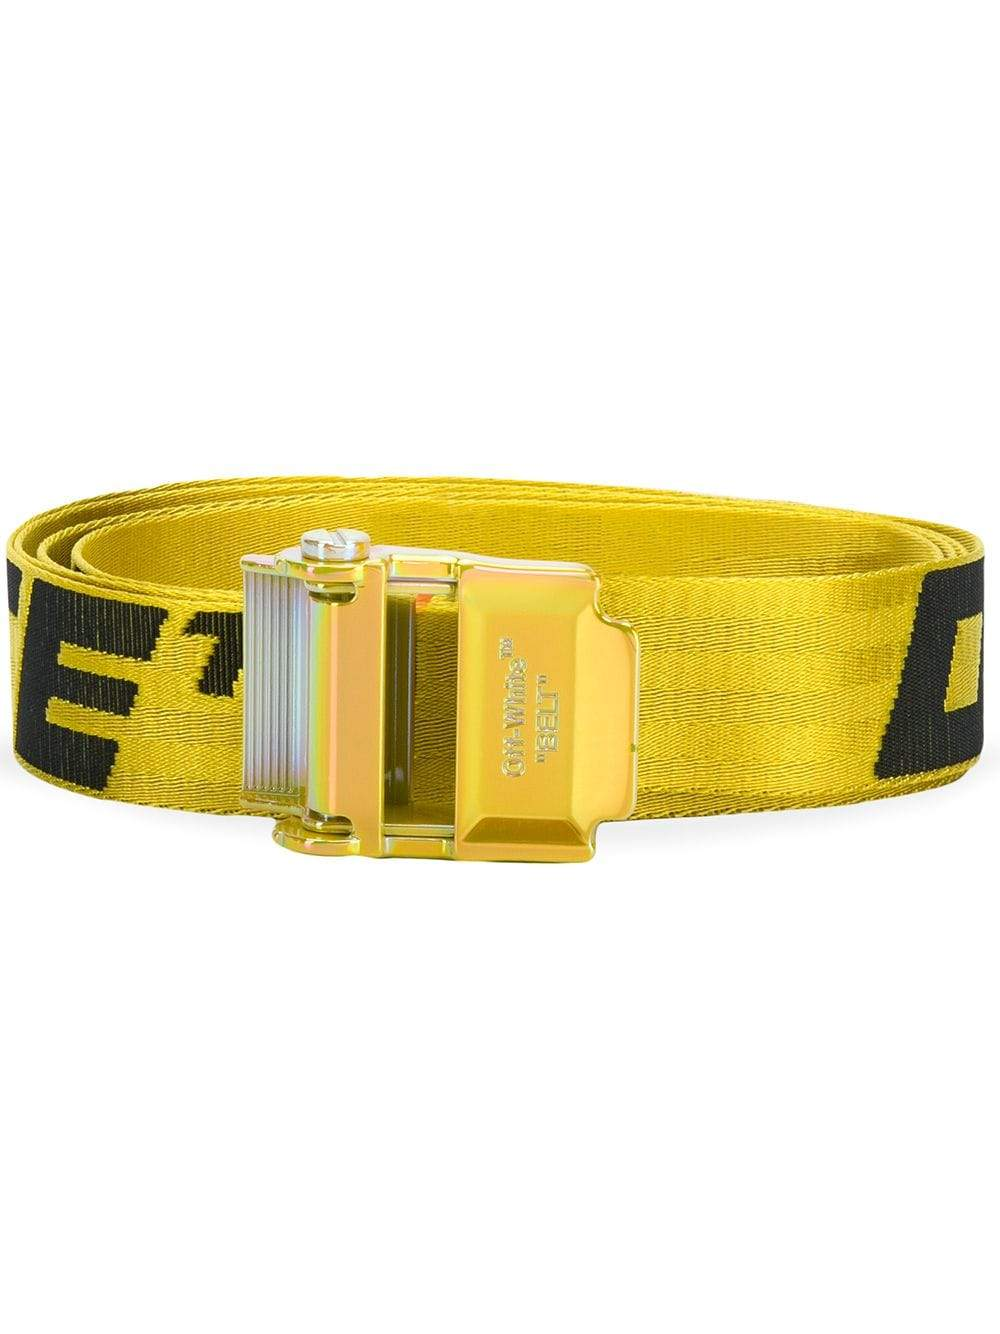 Off-White 2.0 industrial belt Yellow/Oil Slick - Maison De Fashion